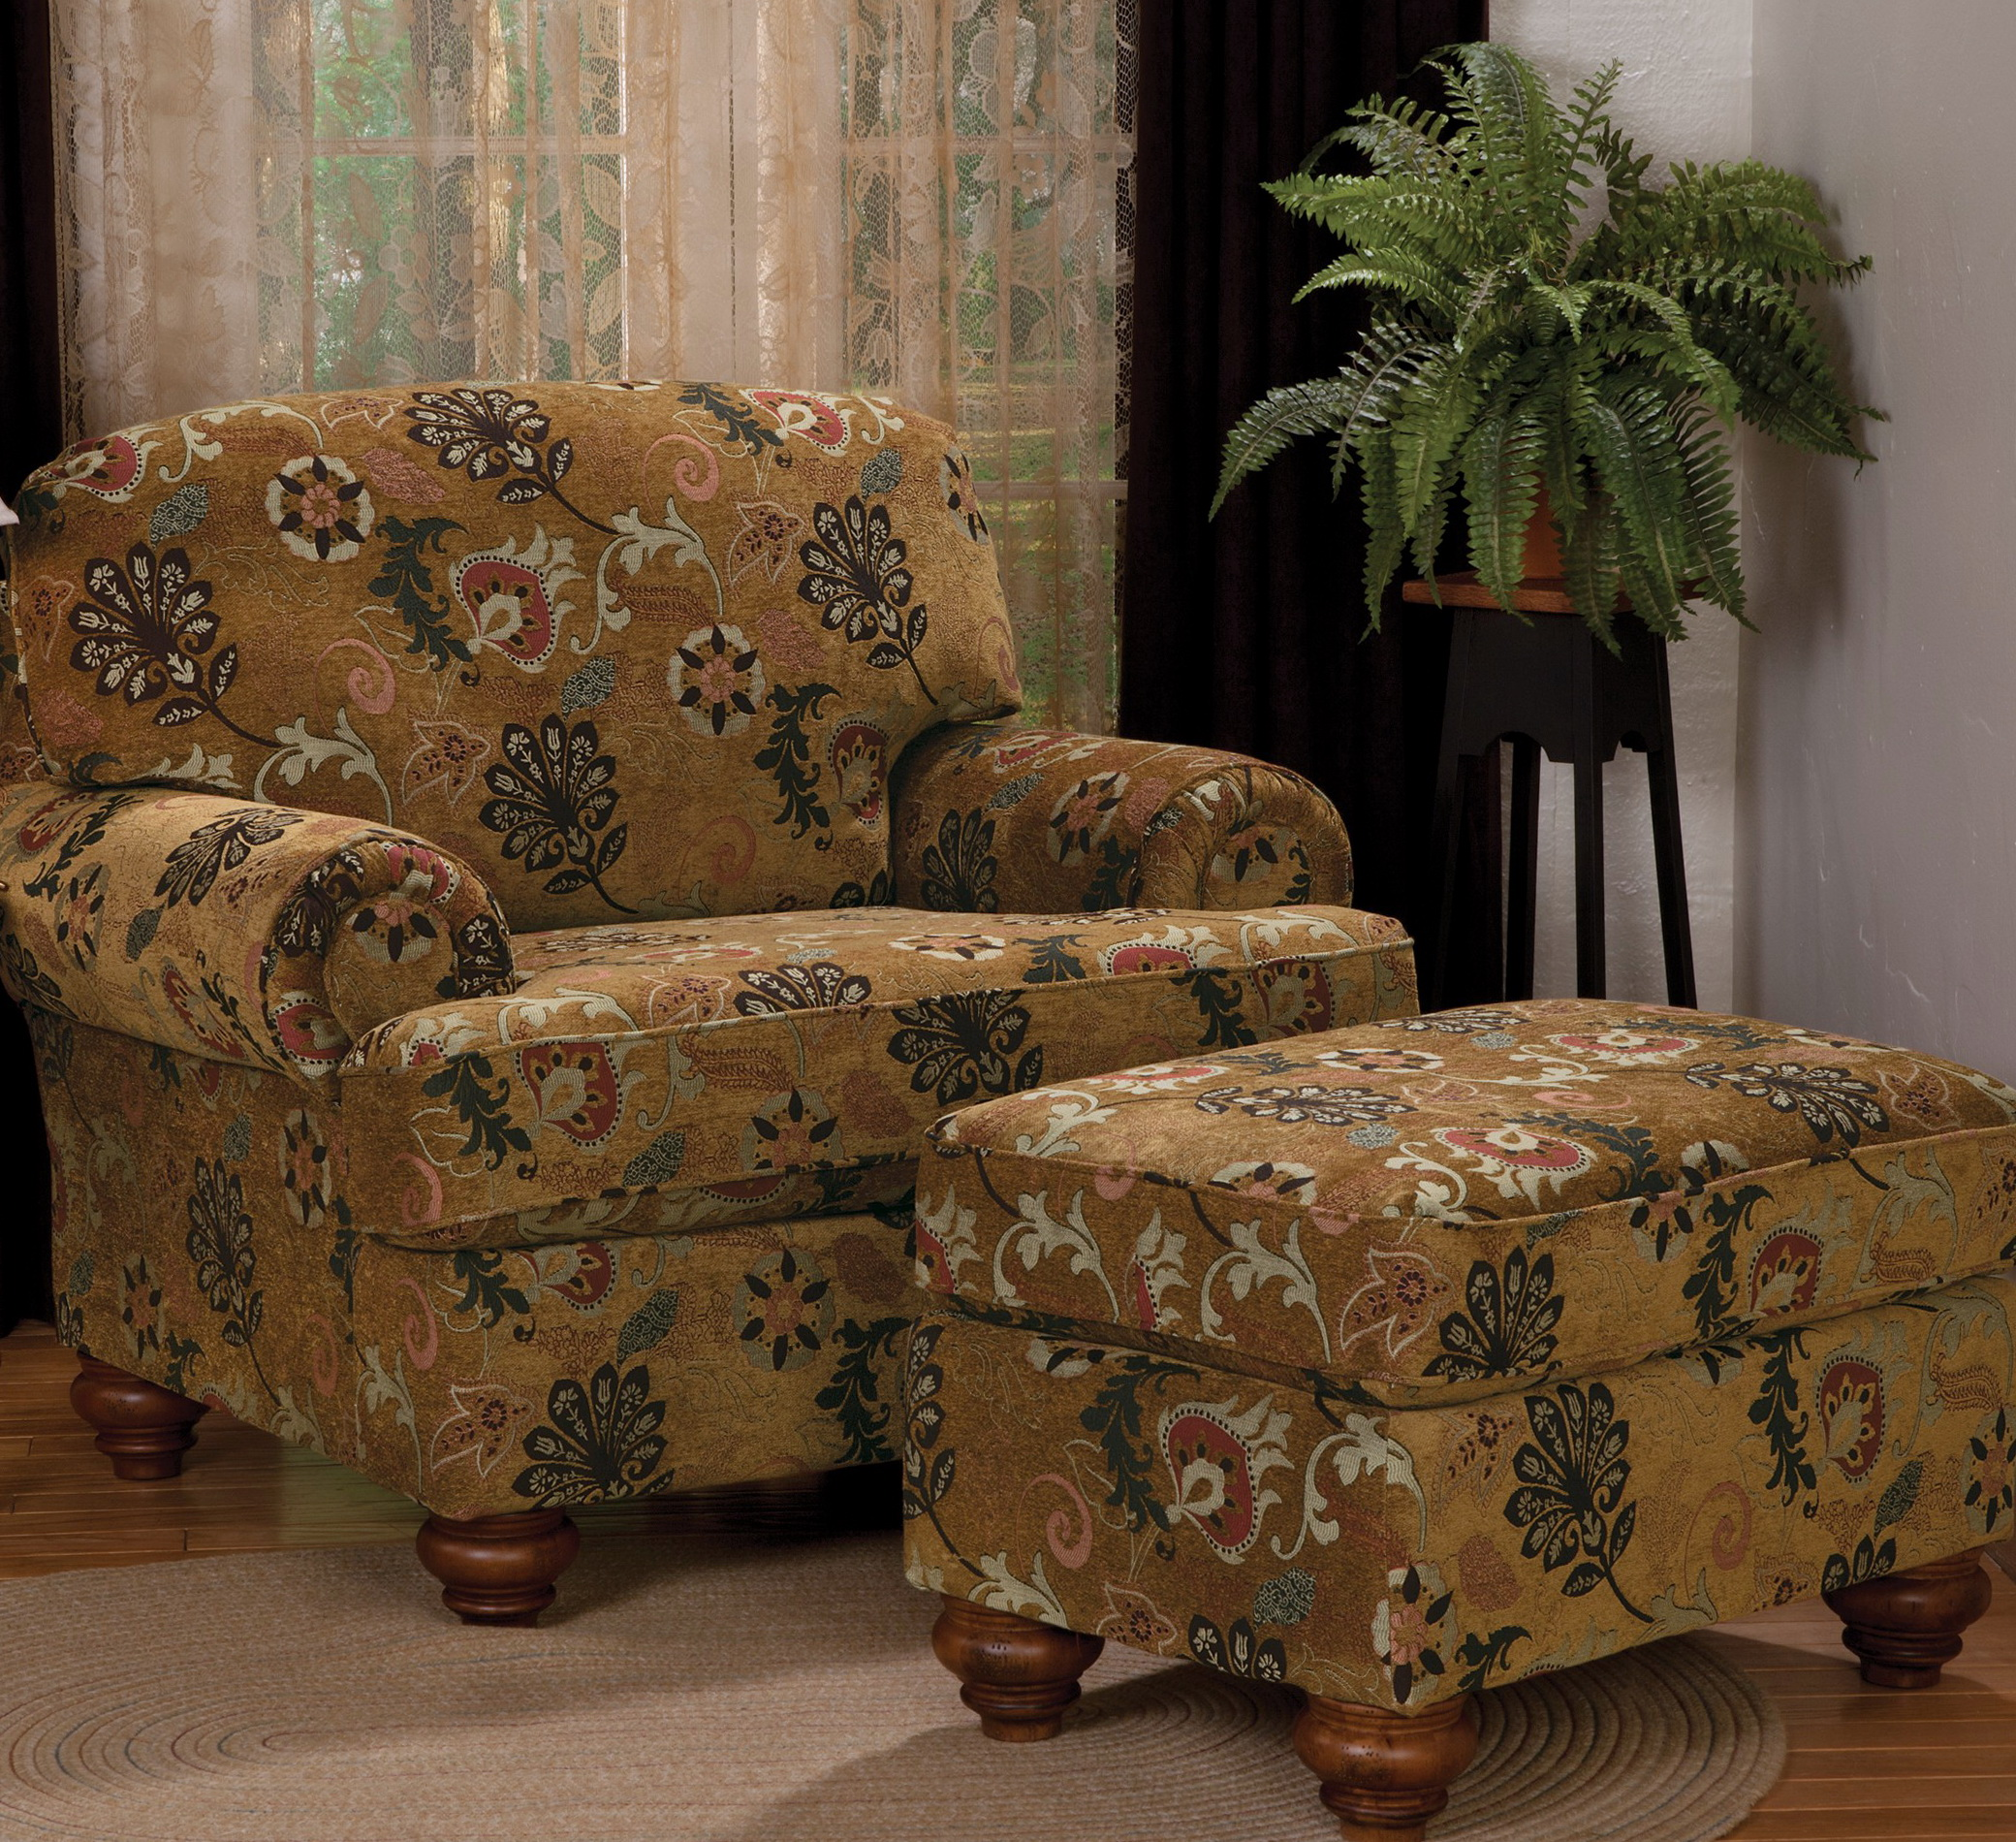 Overstuffed Chair And Ottoman Set